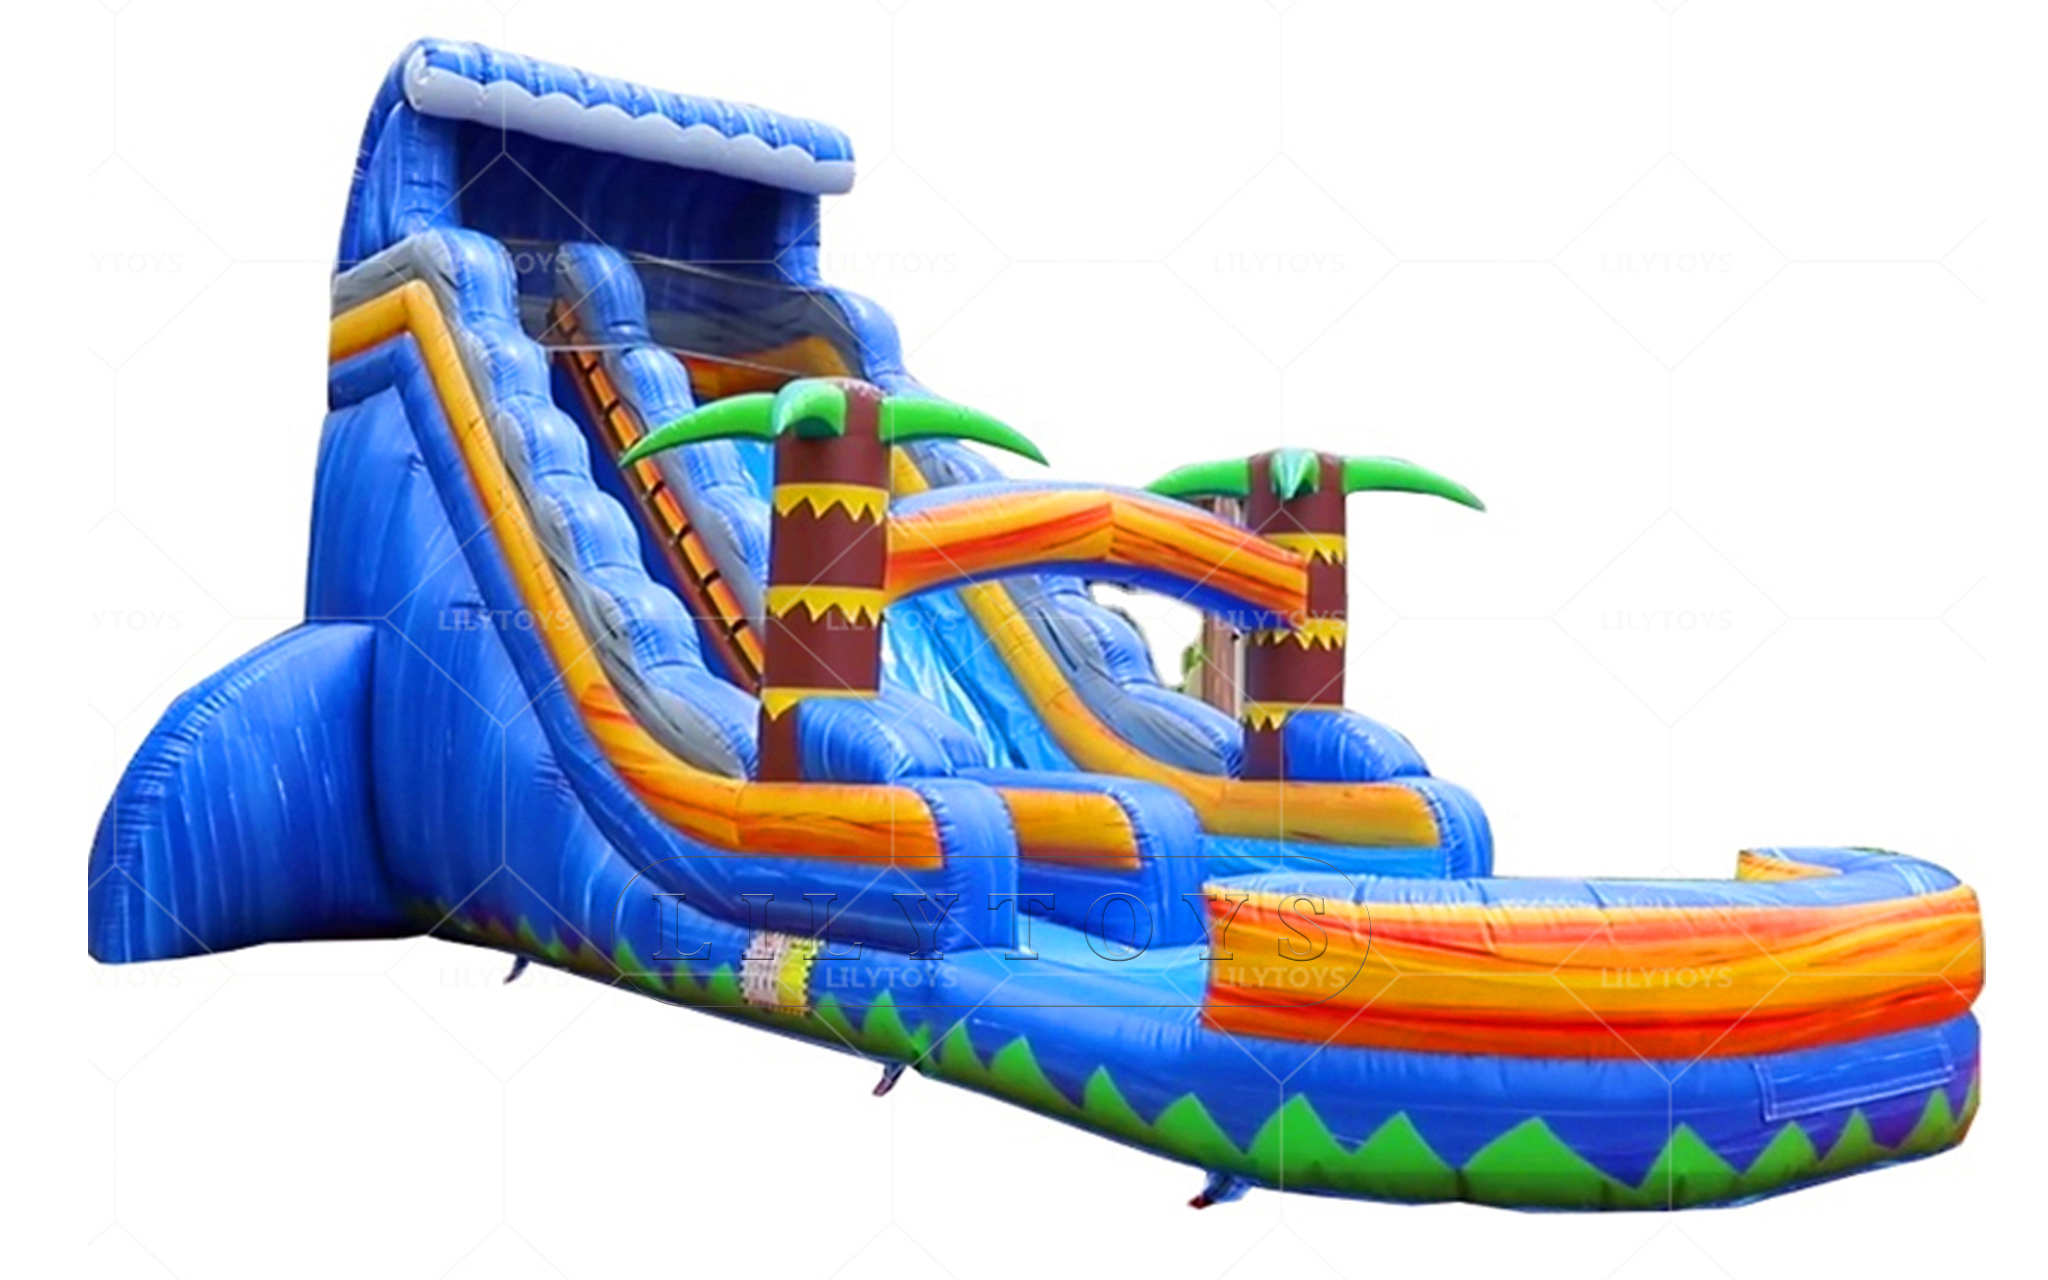 new inflatable water slide for sale